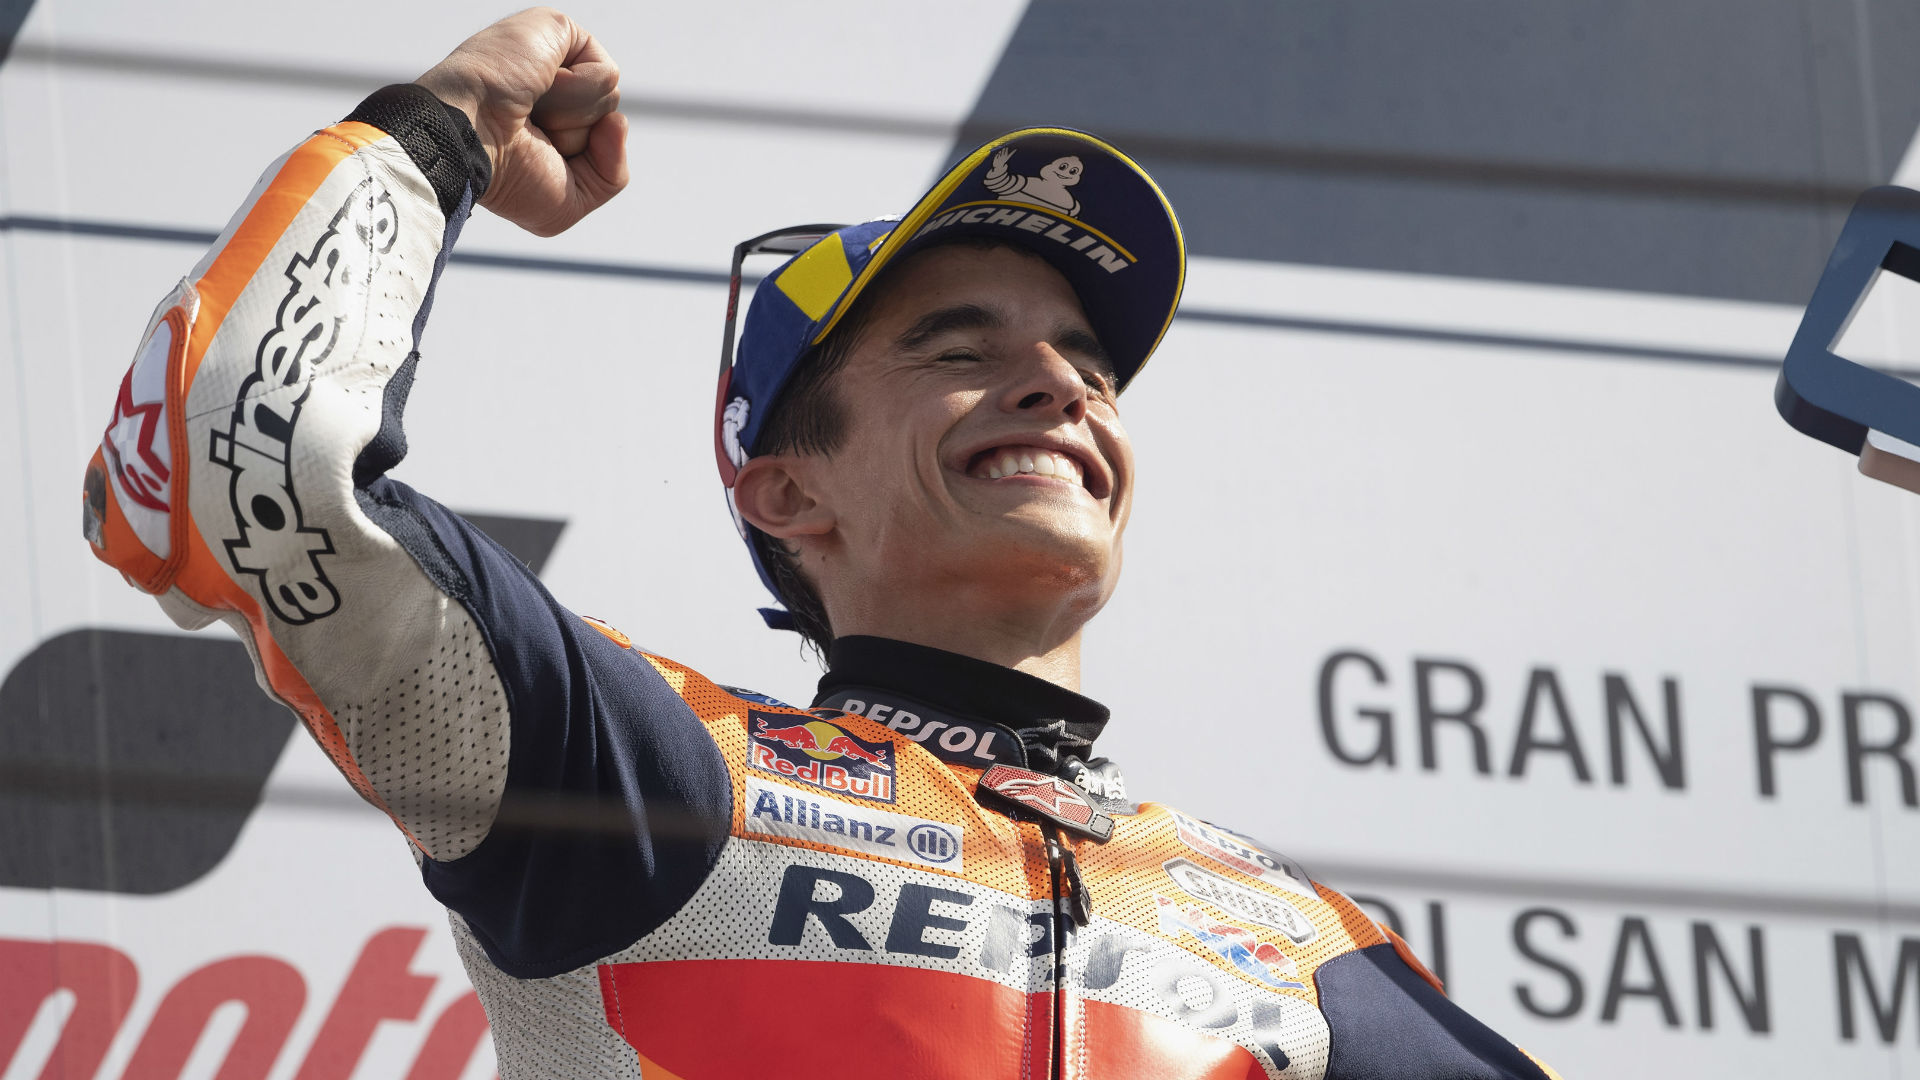 MotoGP Raceweek: Marquez the man to beat, Lorenzo stuck in a slump - Aragon Grand Prix in numbers